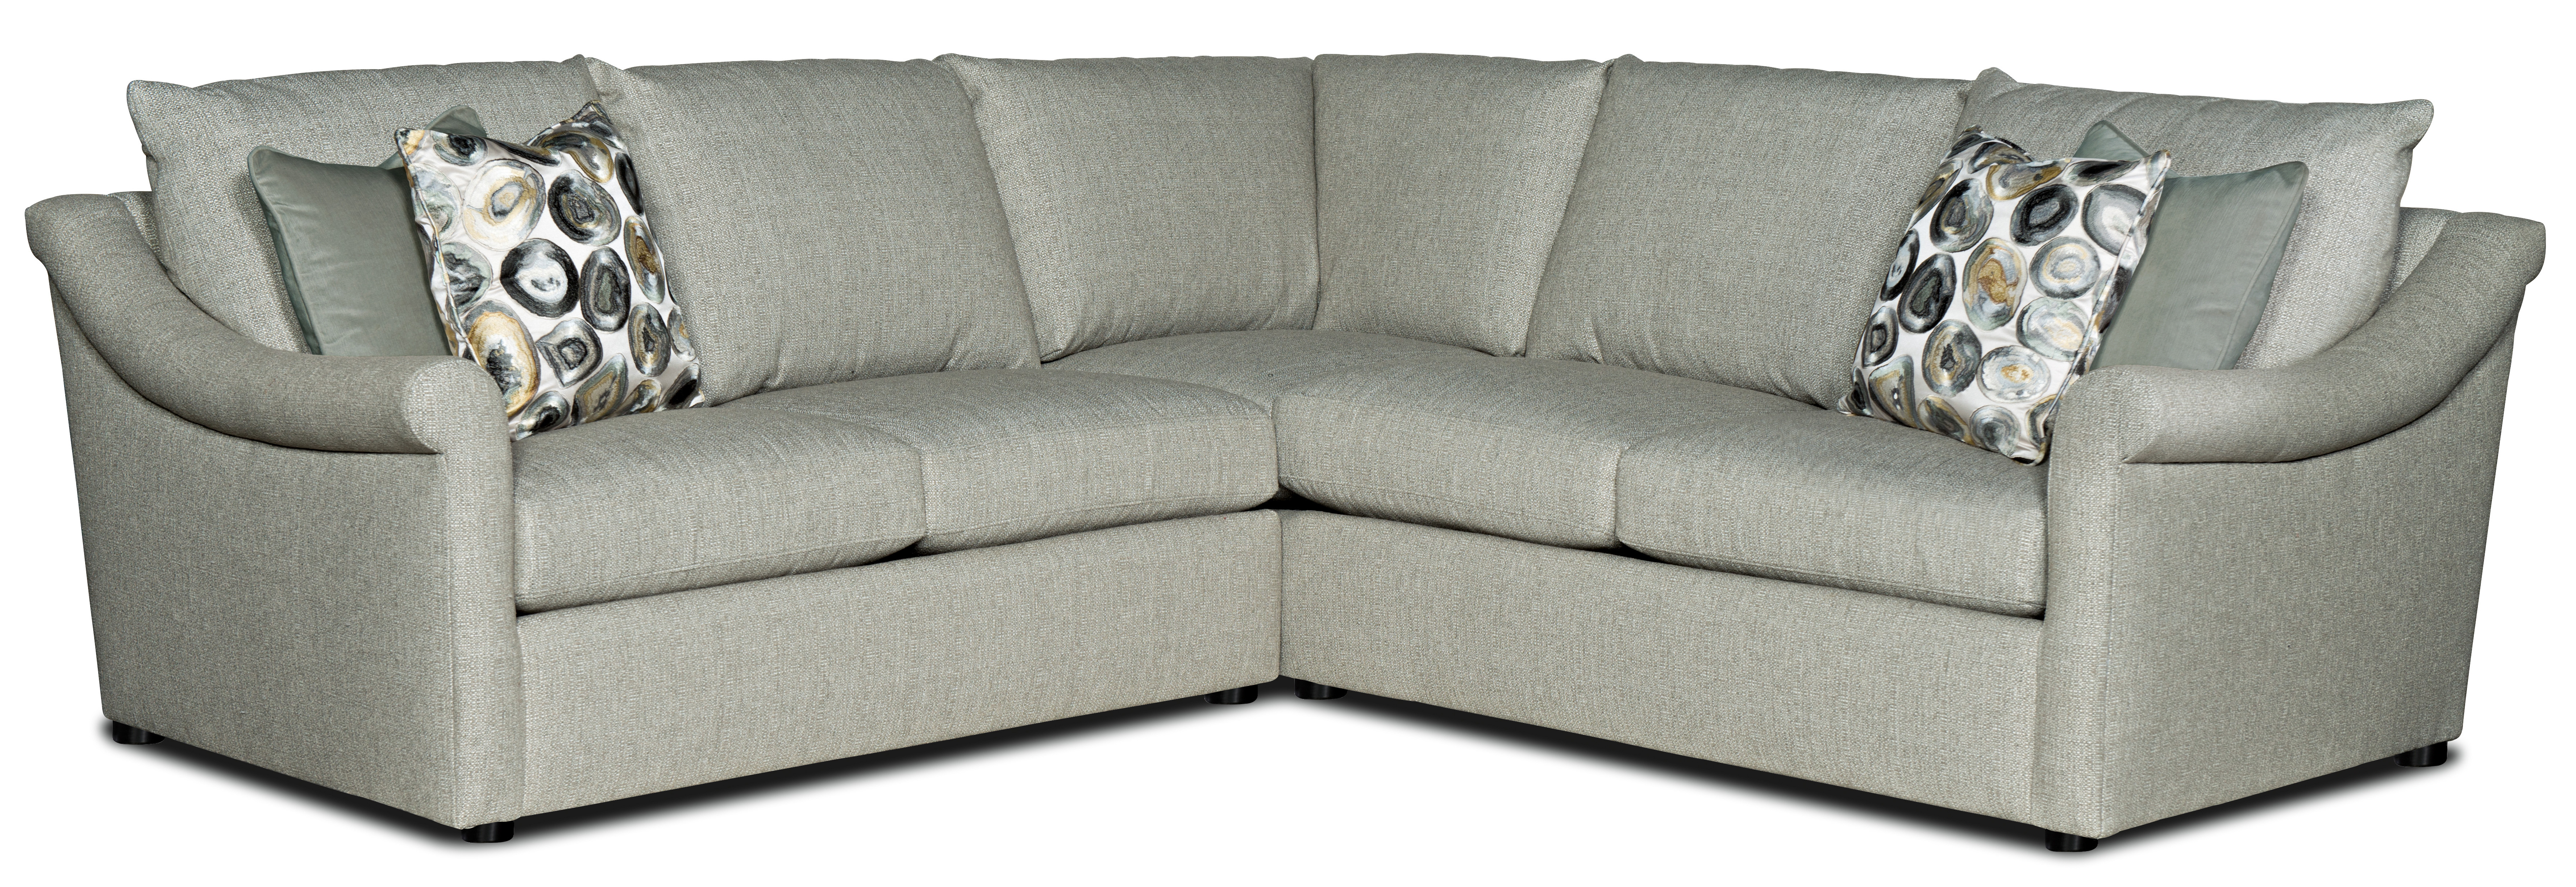 Danae 2-Piece Sectional Sofa w/ LAF Loveseat by Sam Moore at Jacksonville Furniture Mart